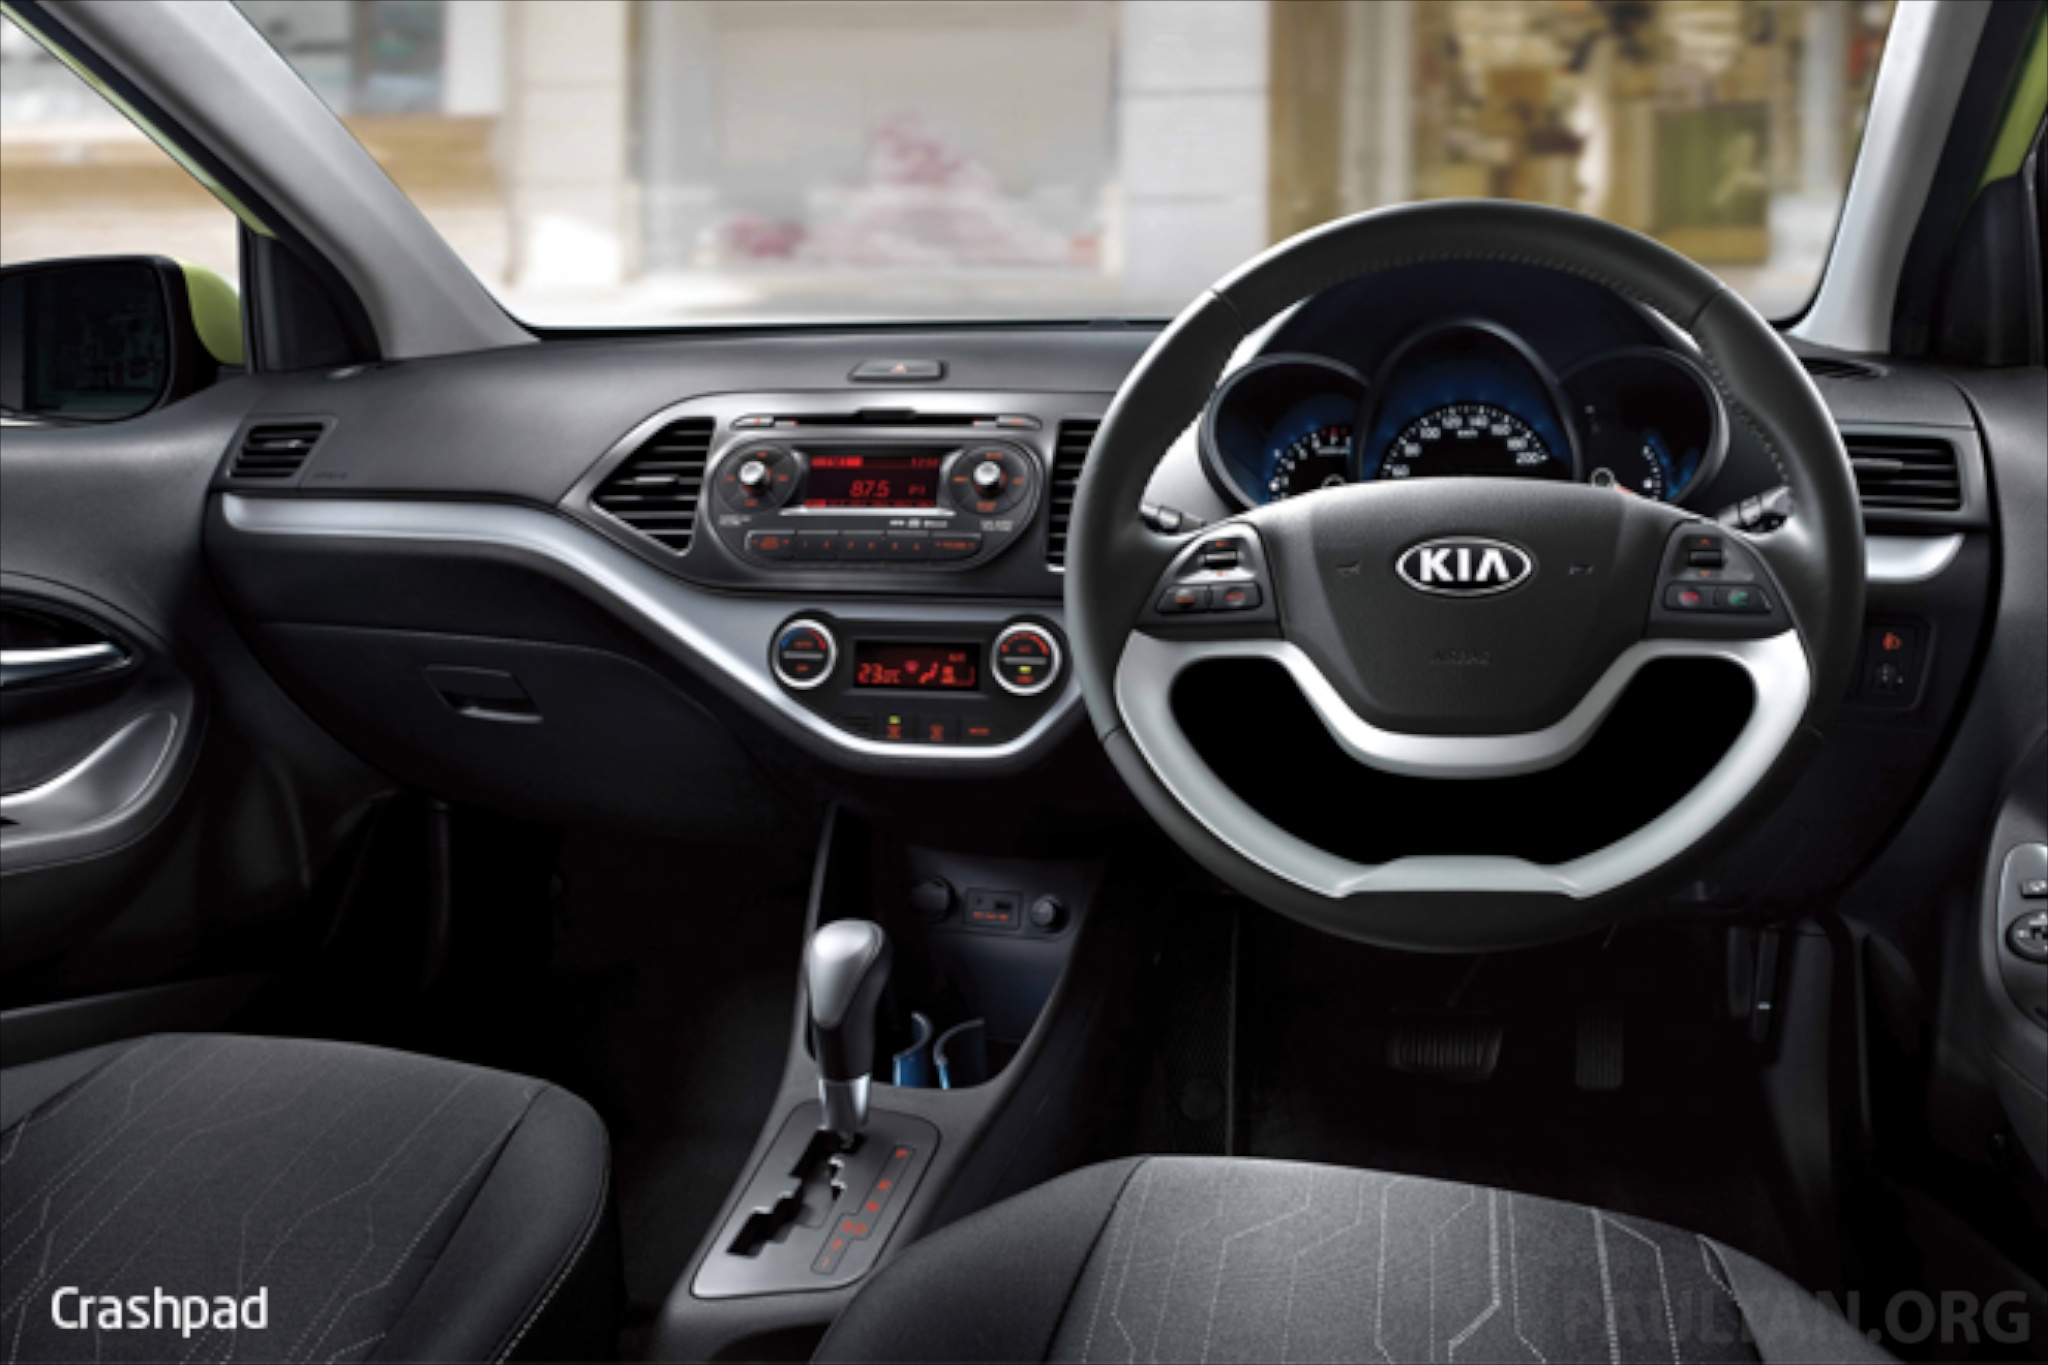 kia picanto 2014 automatic images. Black Bedroom Furniture Sets. Home Design Ideas